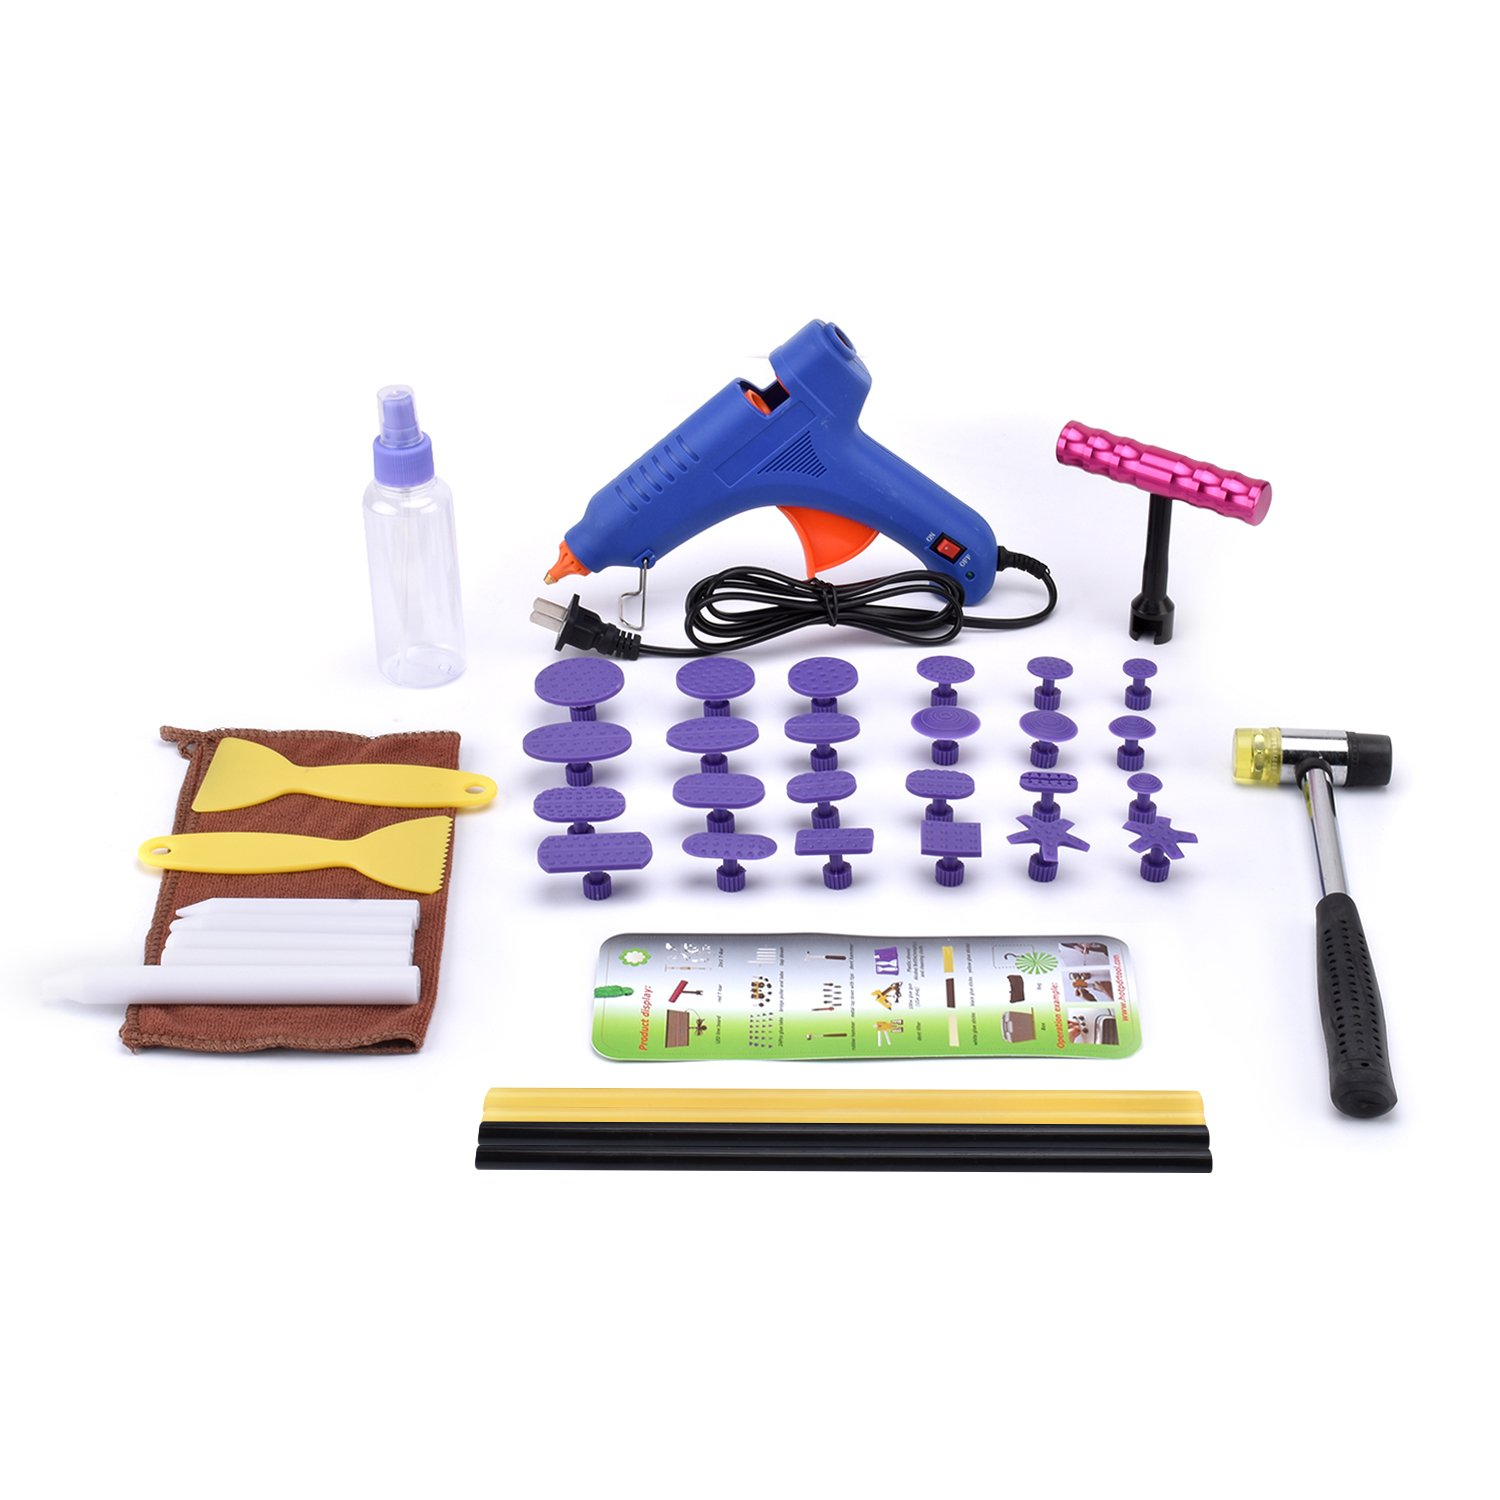 HOTPDR Paintless Dent Removal Tools Dent Repair Glue Puller Kit Pdr Tools for Car Dent Repair for Automobile Body Motorcycle Refrigerator Washer (41pcs)